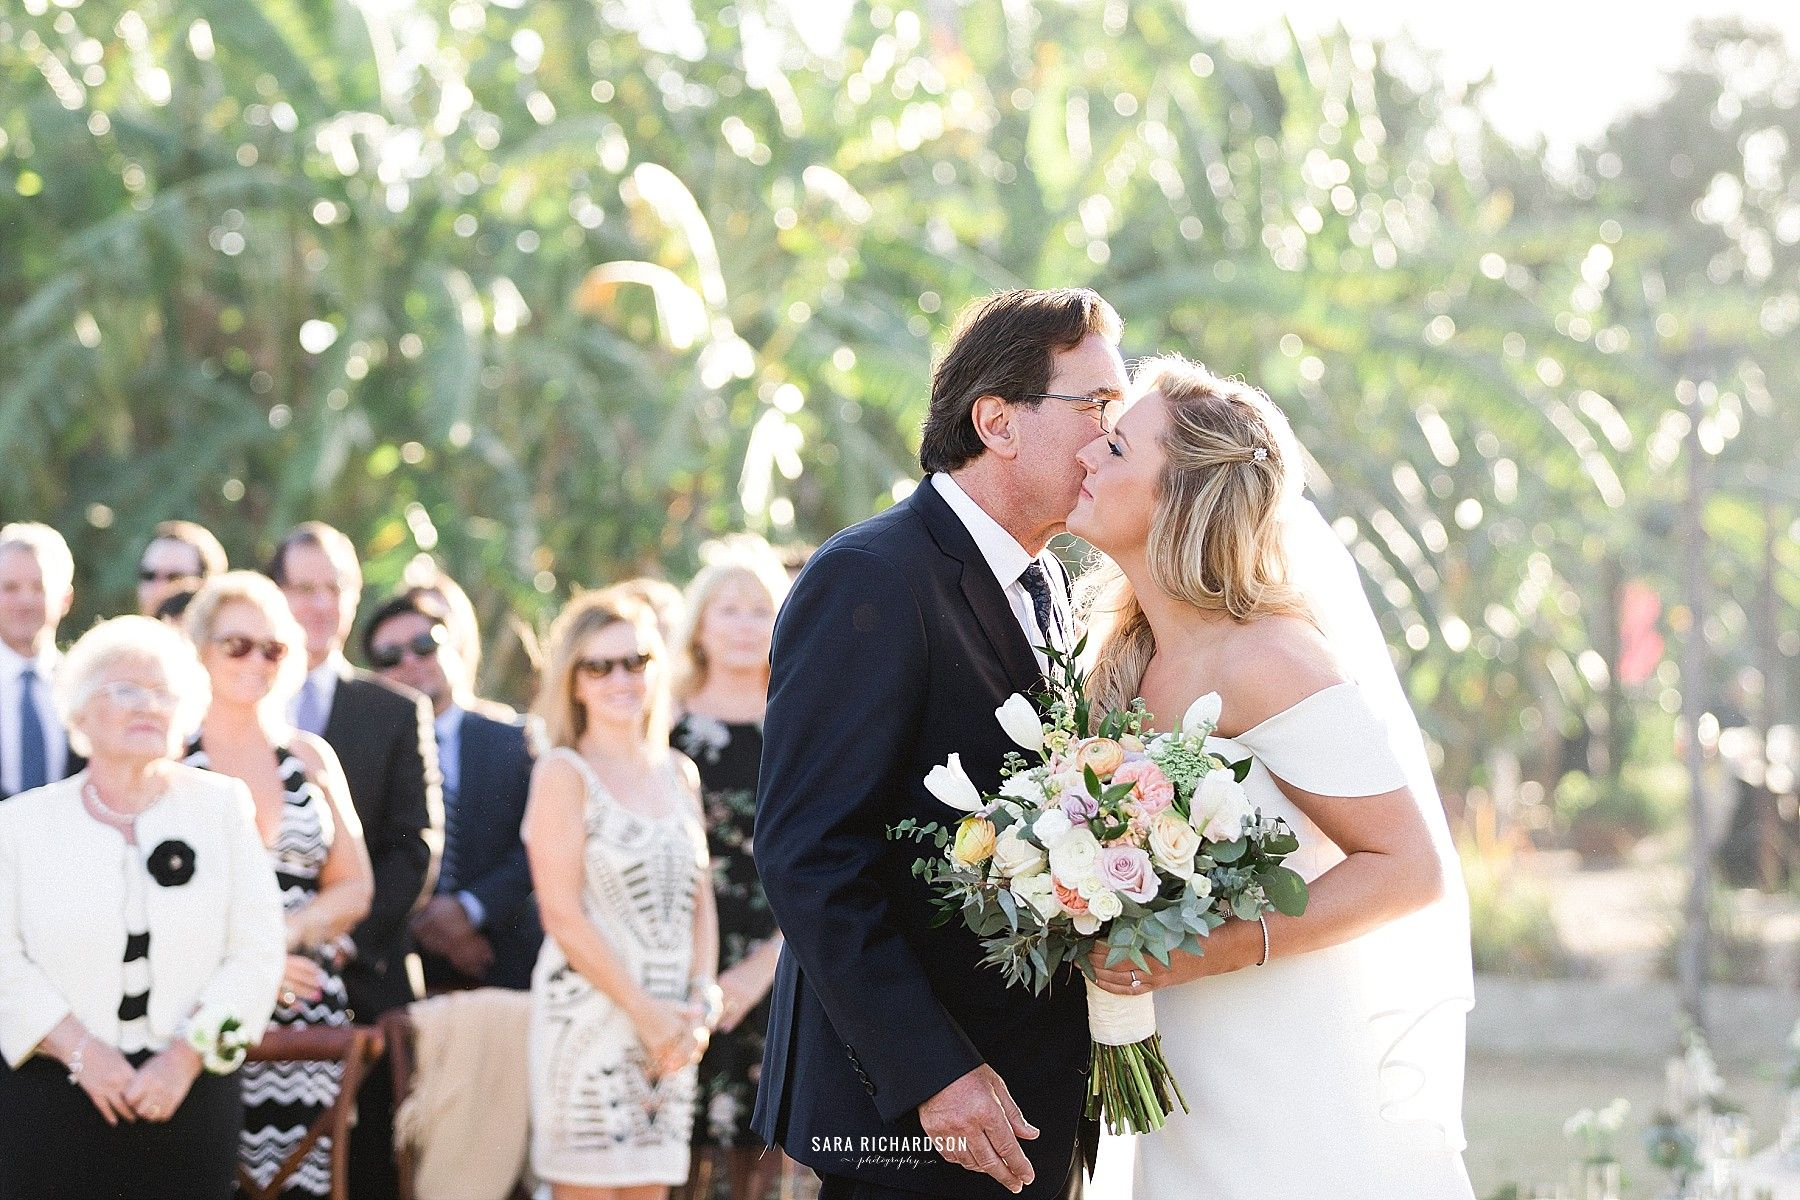 Bride kissing her dad as he hands her off prior to the ceremony beginning.